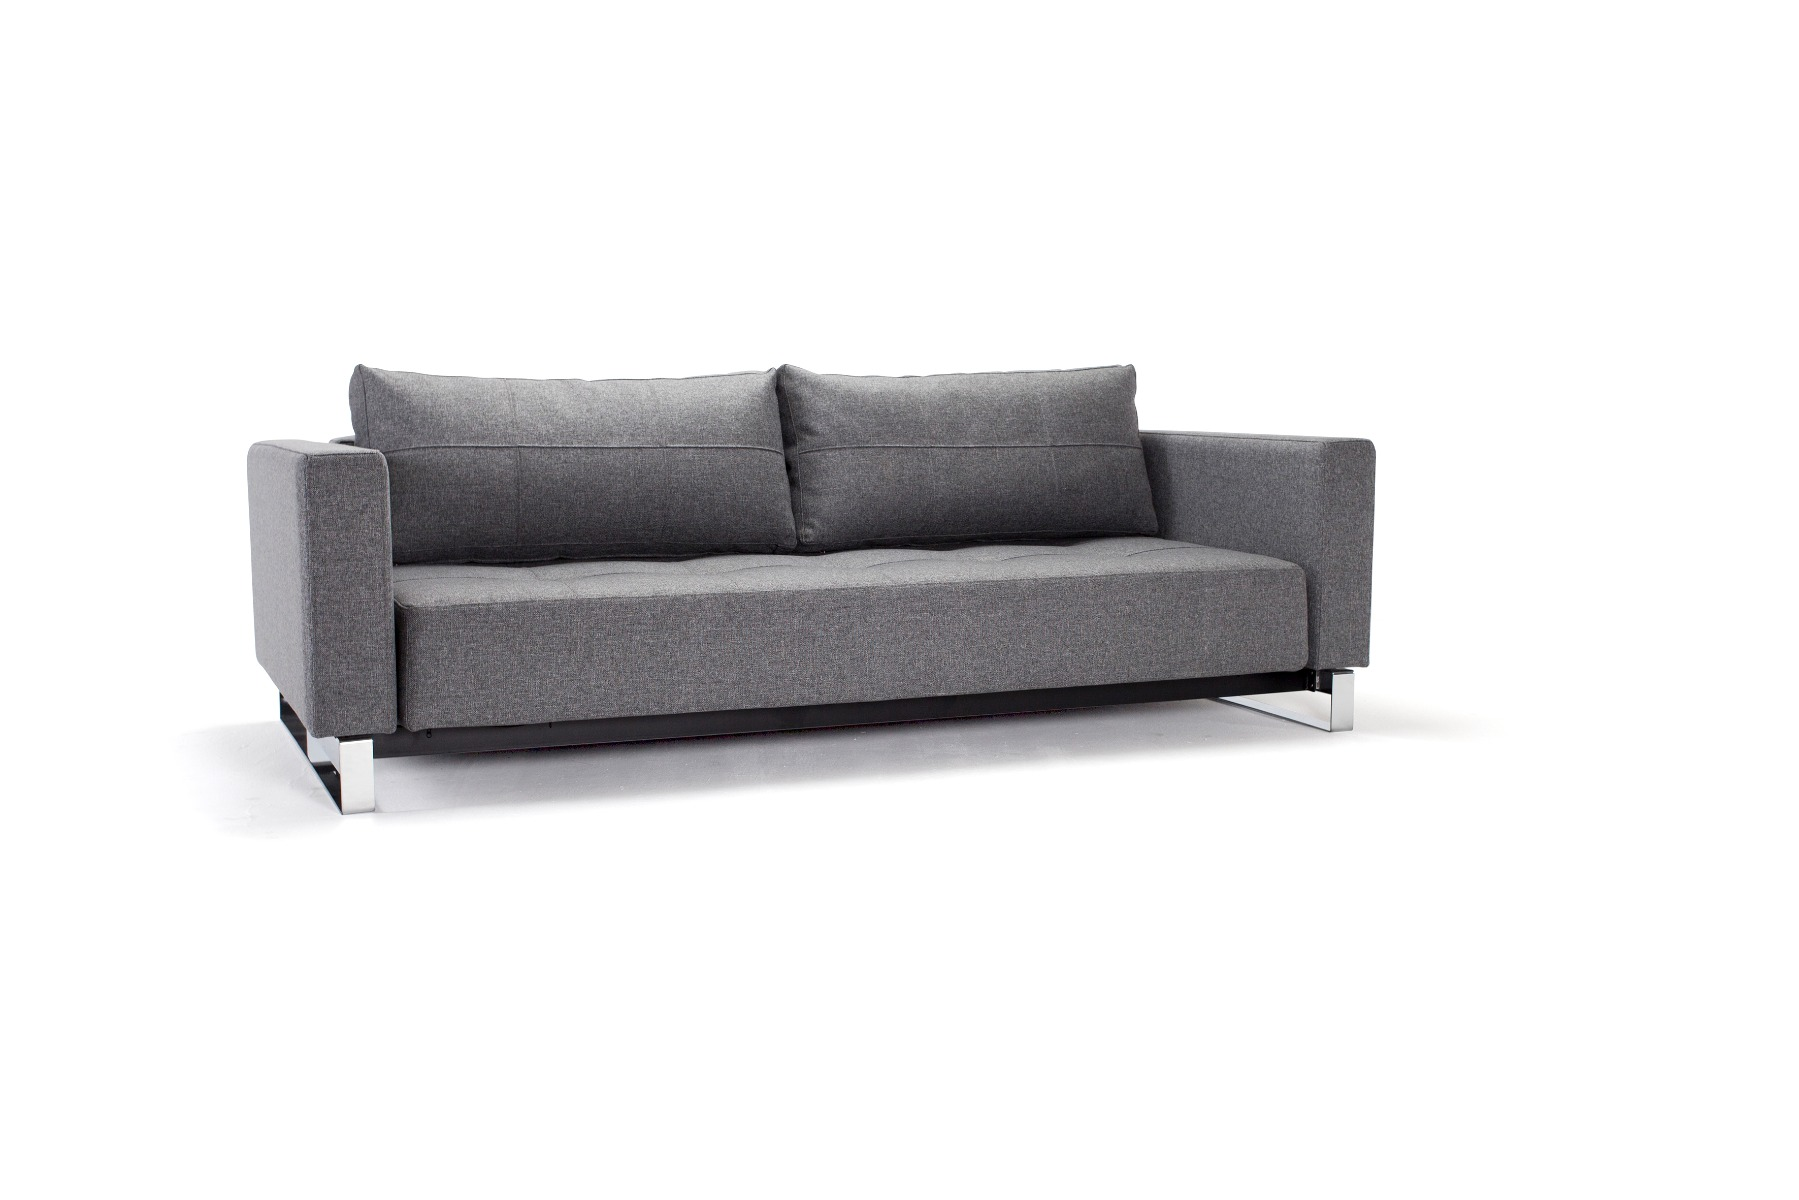 Cassius D.E. Lounger - Twist Charcoal Sovesofa